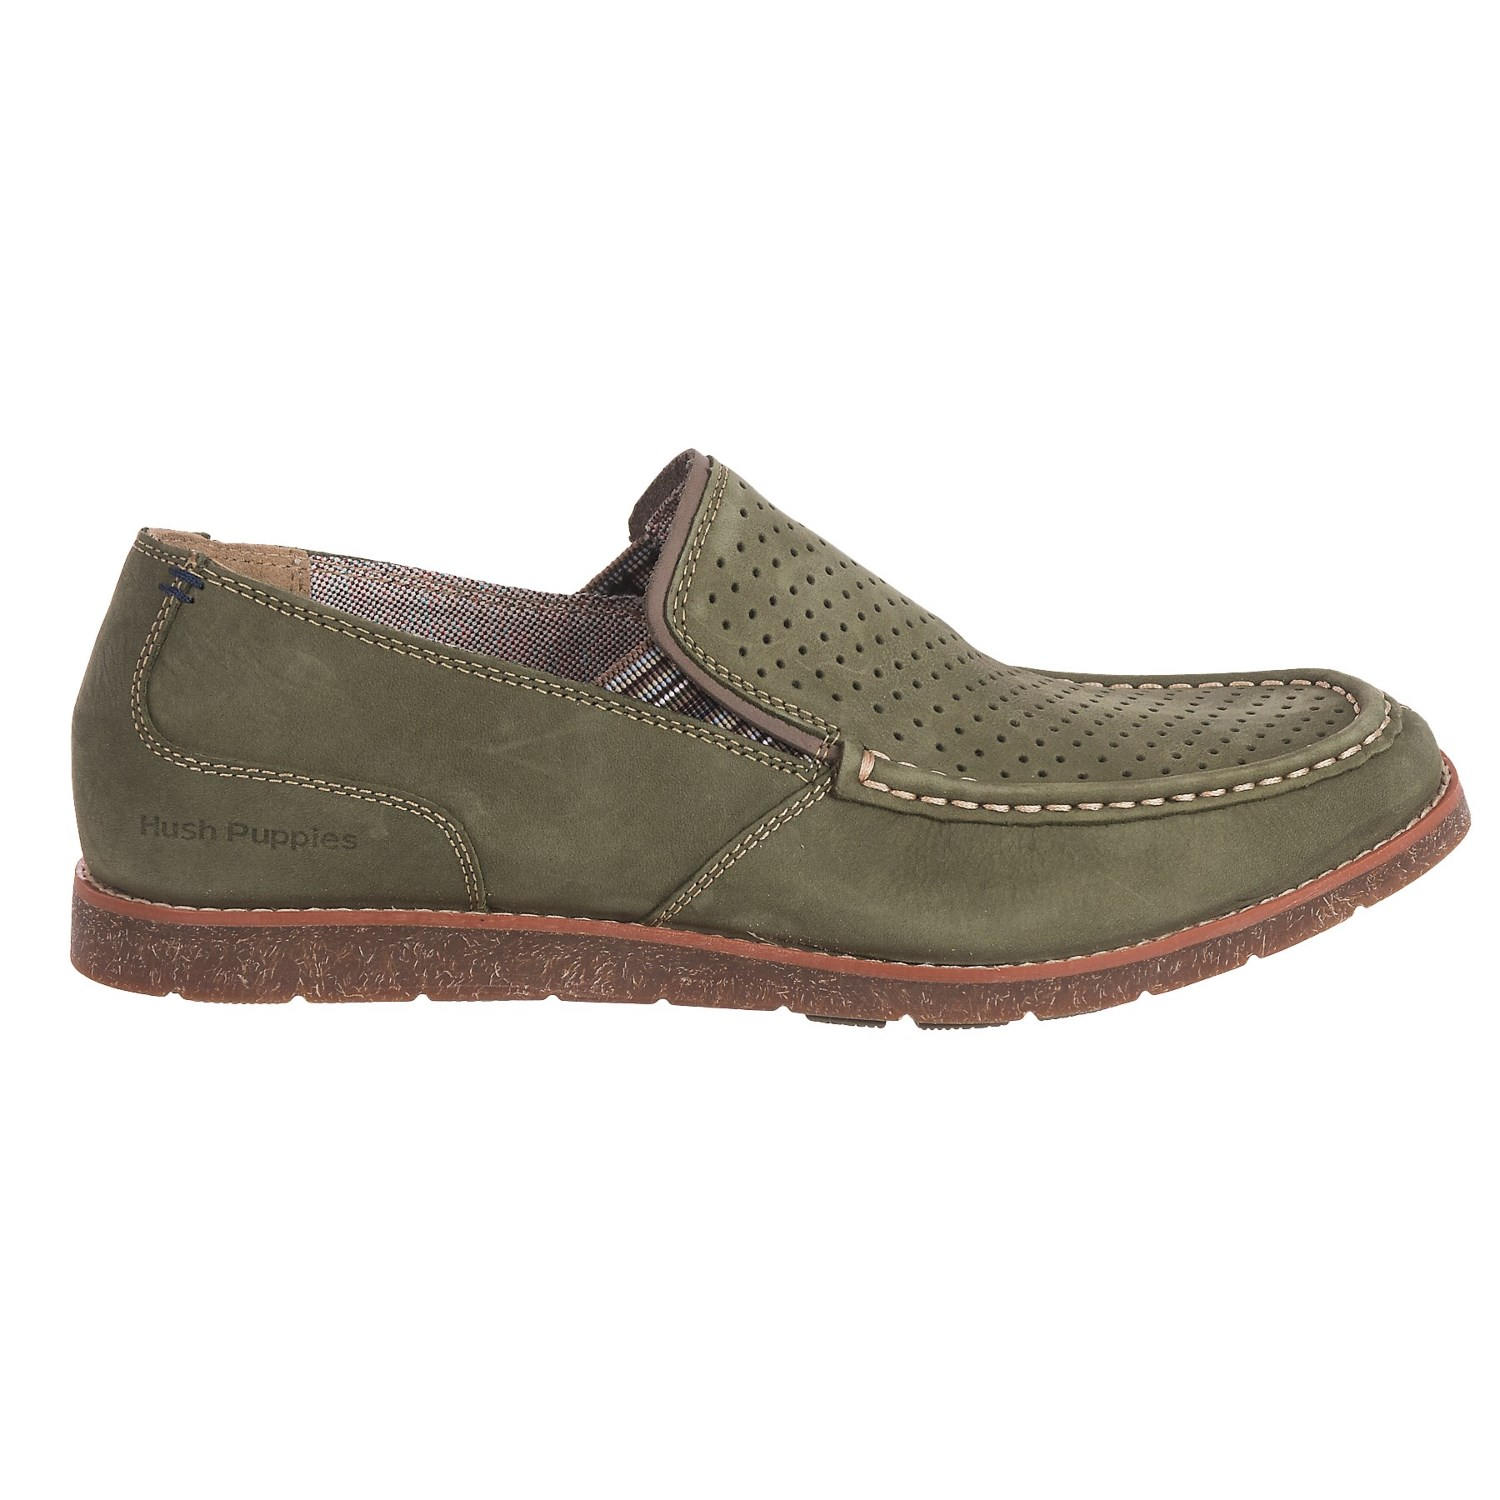 Hush Puppies Lorens Jester Loafers - Leather (For Men)